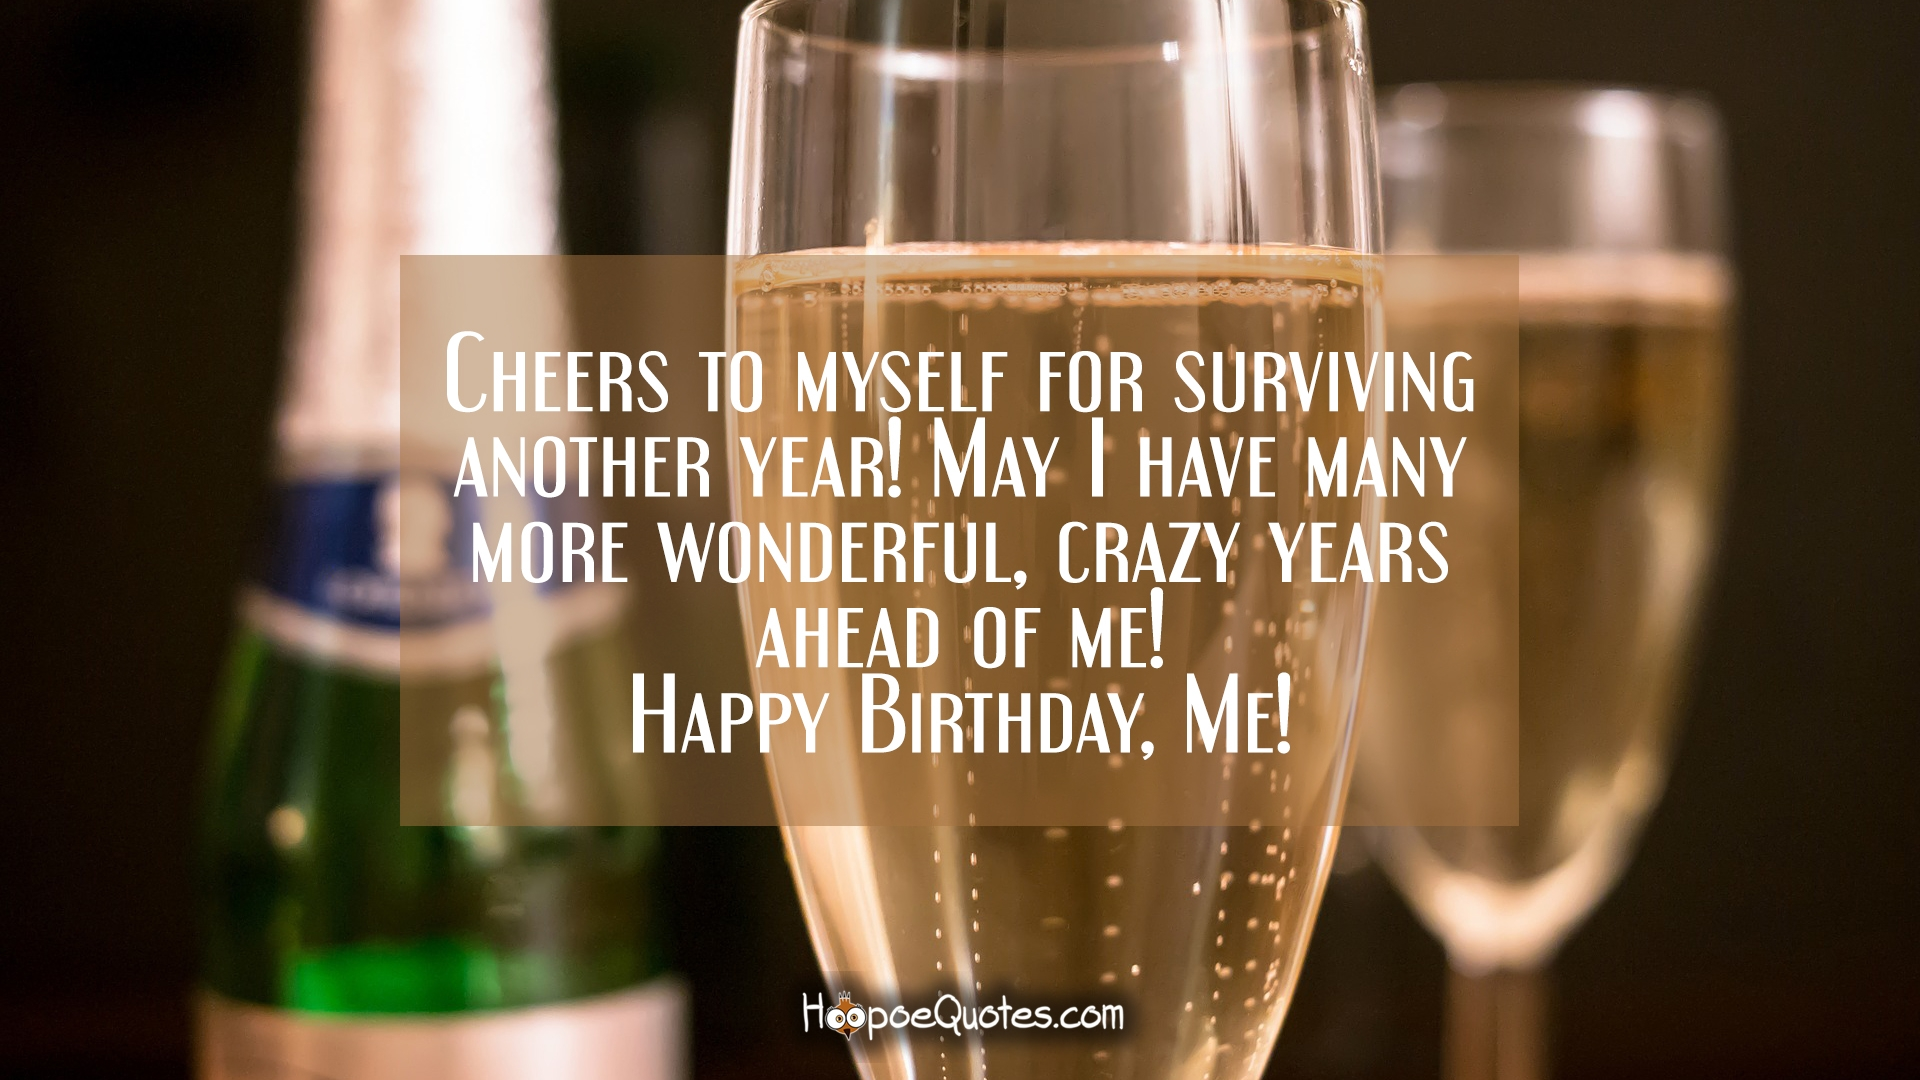 Awesome Surviving Anor May I Have Many More Happy Birthday Cheers Wishes Happy Birthday Cheers Beer Images Cheers To Myself gifts Happy Birthday Cheers